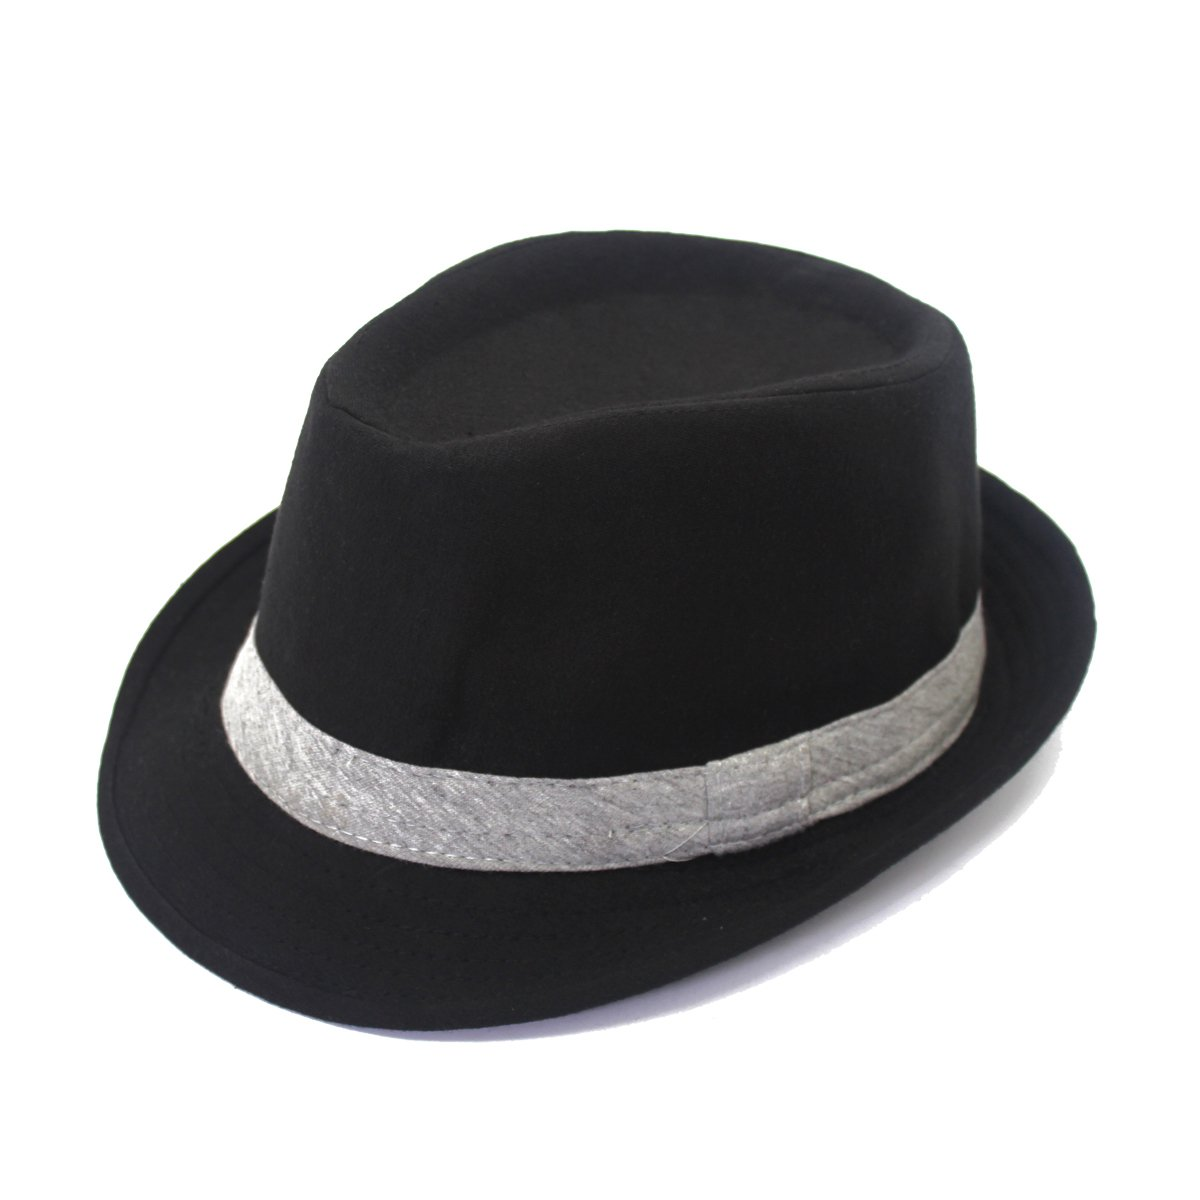 outfly Unisex Fedora Trilby Hat Top Hat 100% Cotton, M 22.1-22.8in B11094-B